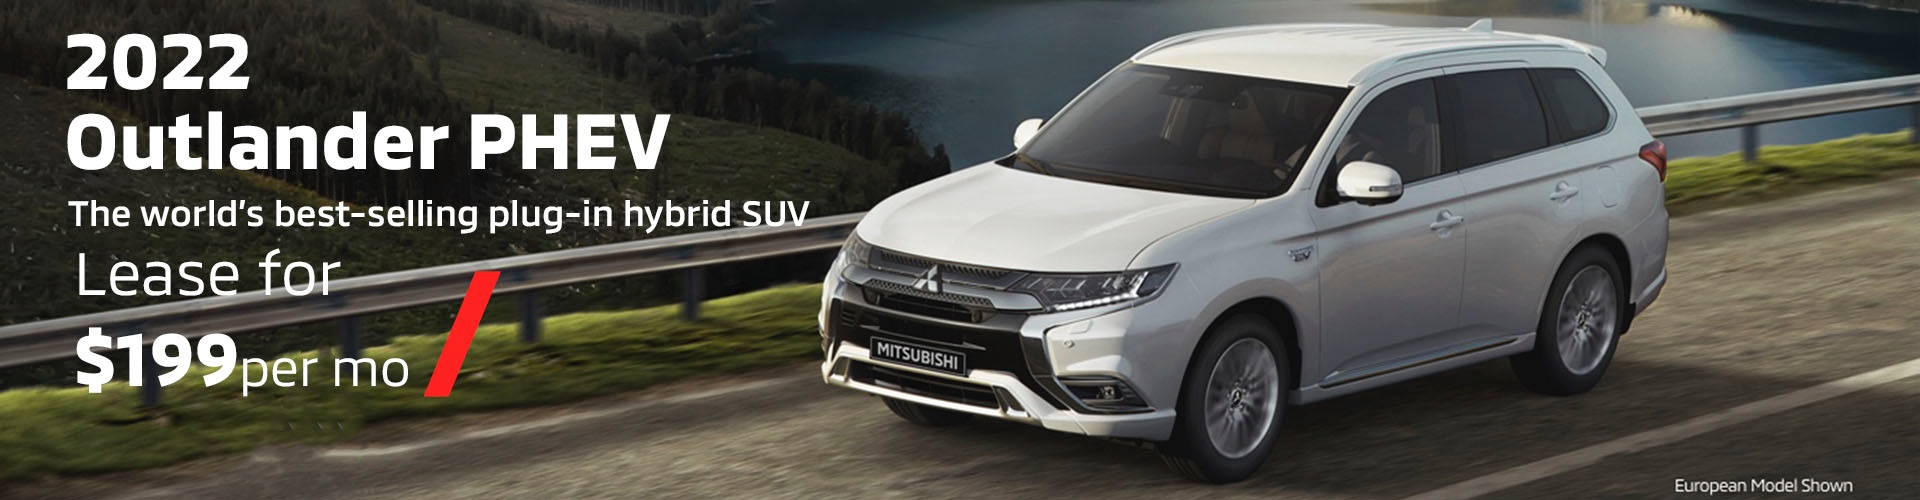 Deferred payment plans available at Cornerstone Mitsubishi.